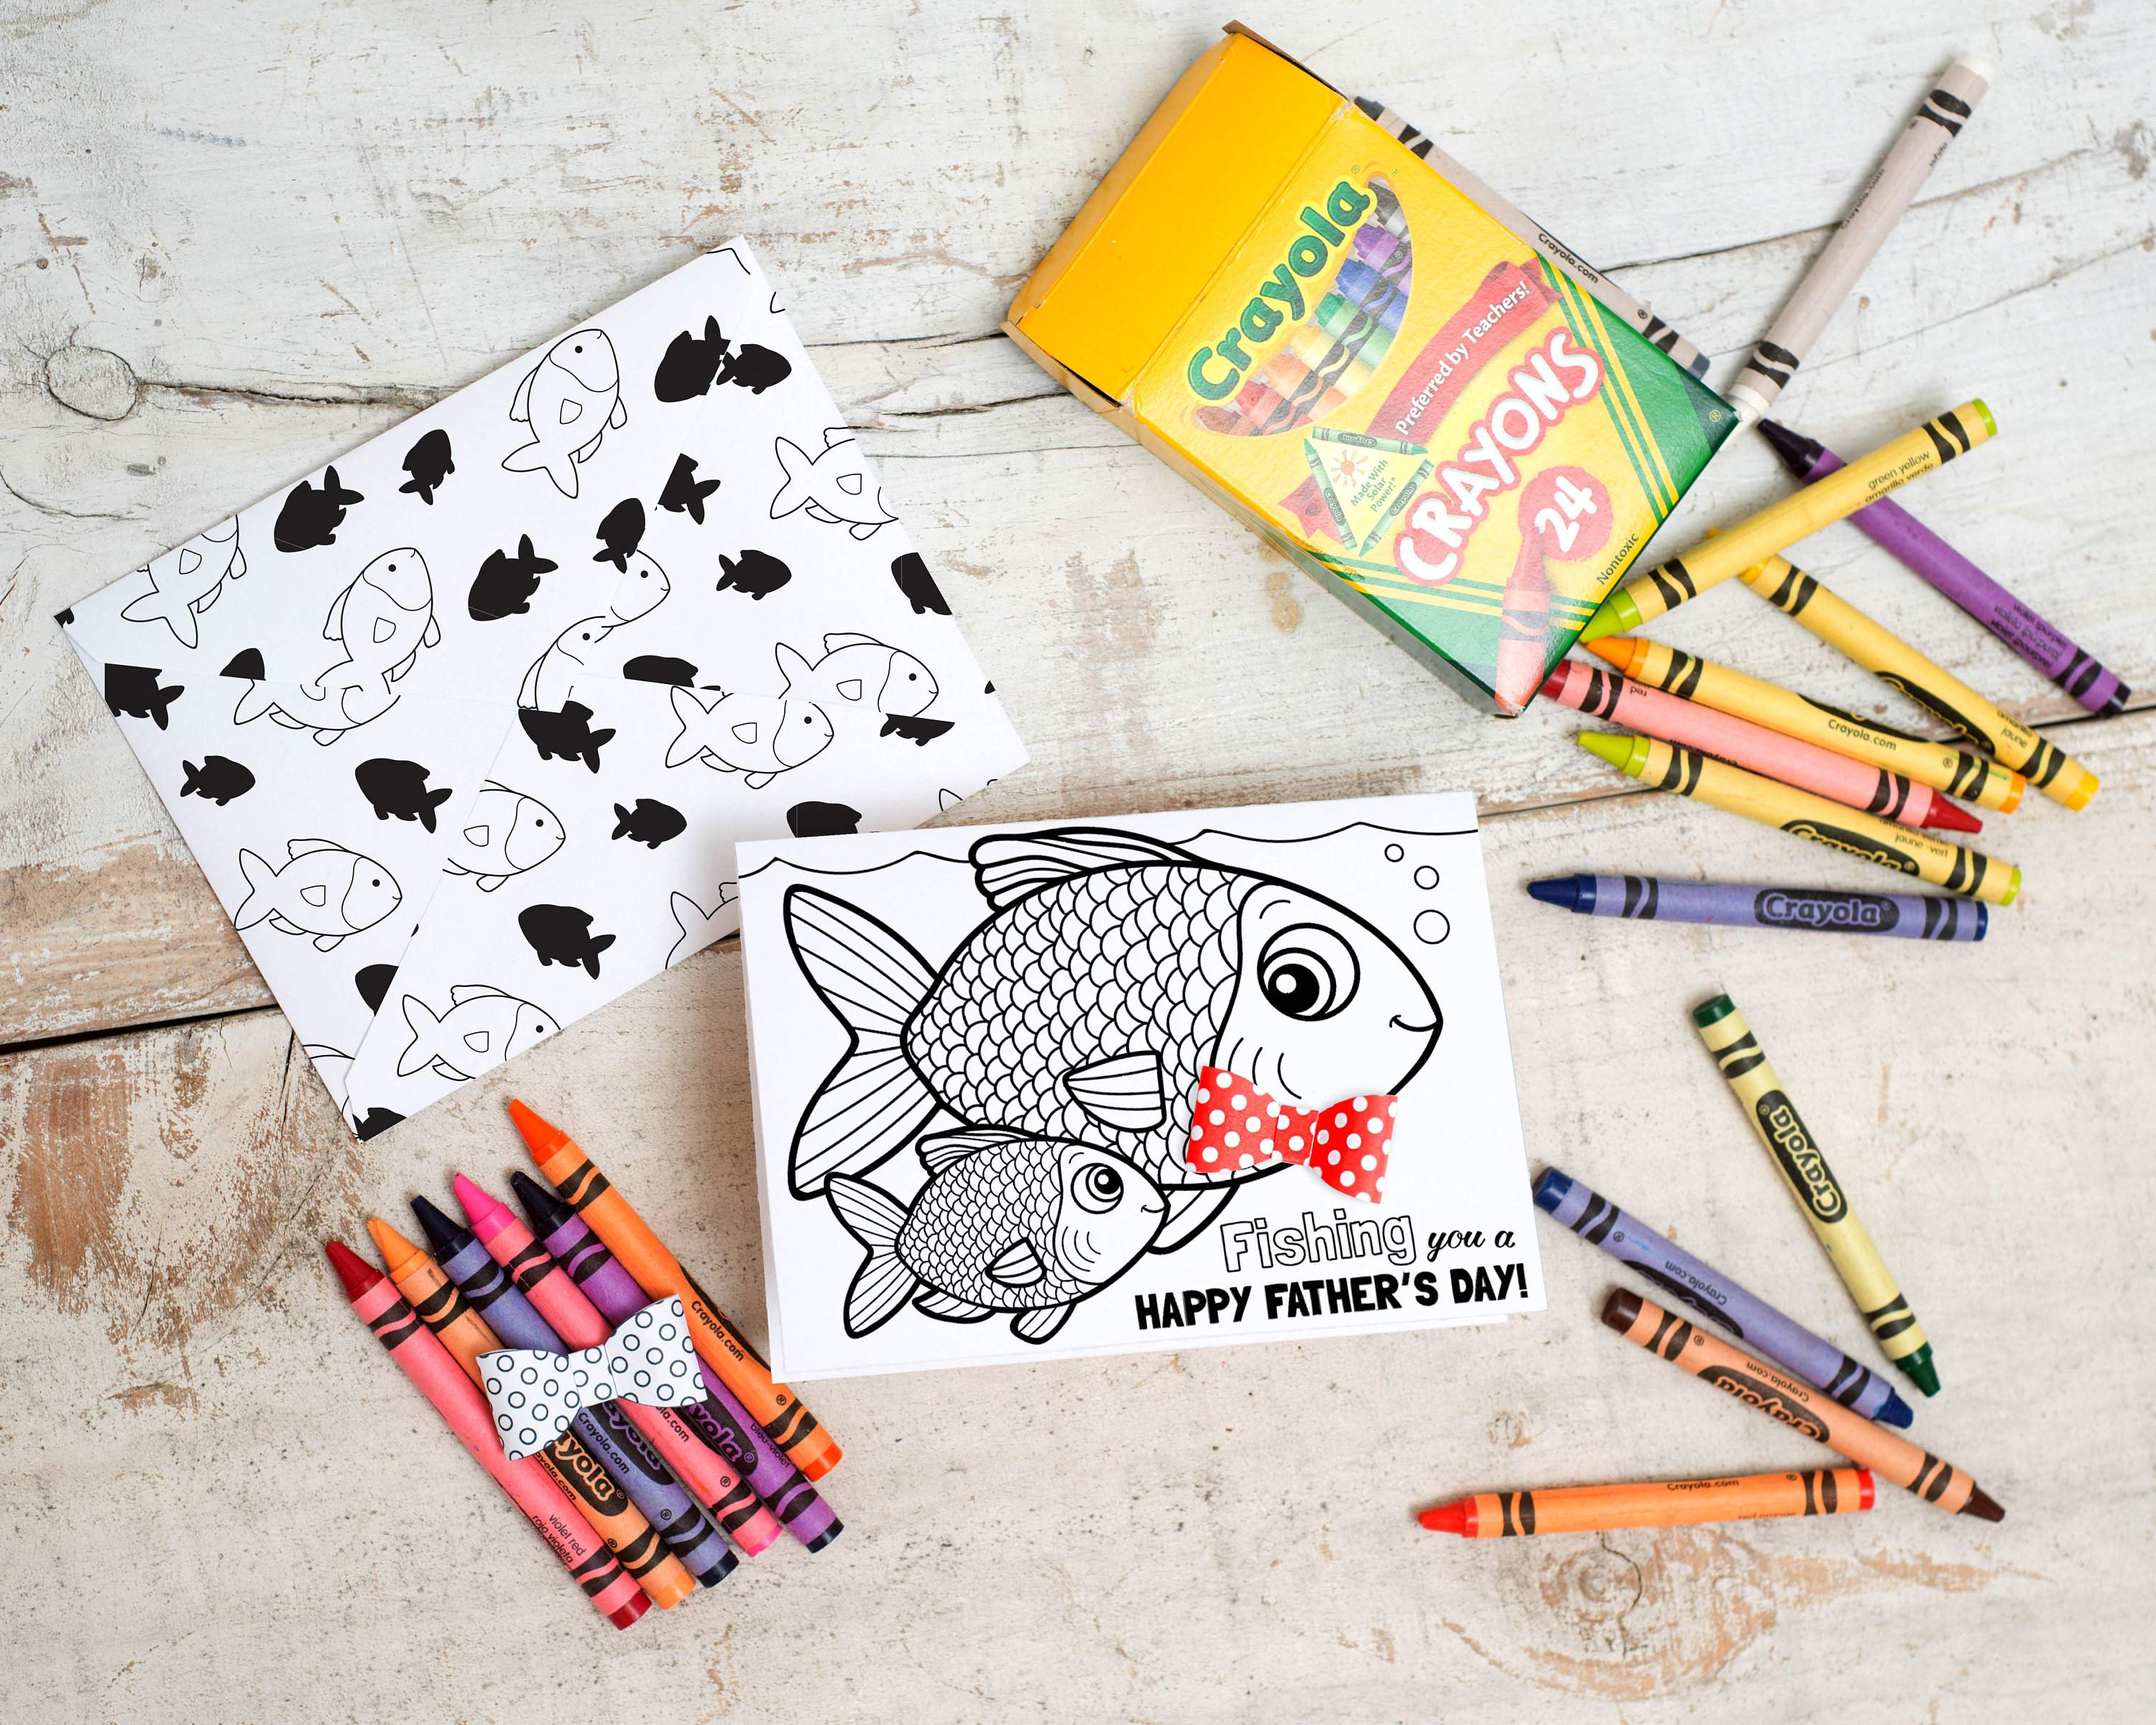 Crayola Fish Coloring Pages Printable Fish Fathers Day Card Fishing Coloring Page Card With 3d Bowtie Diy Kids Classroom Craft Fathers Day Activity Printable